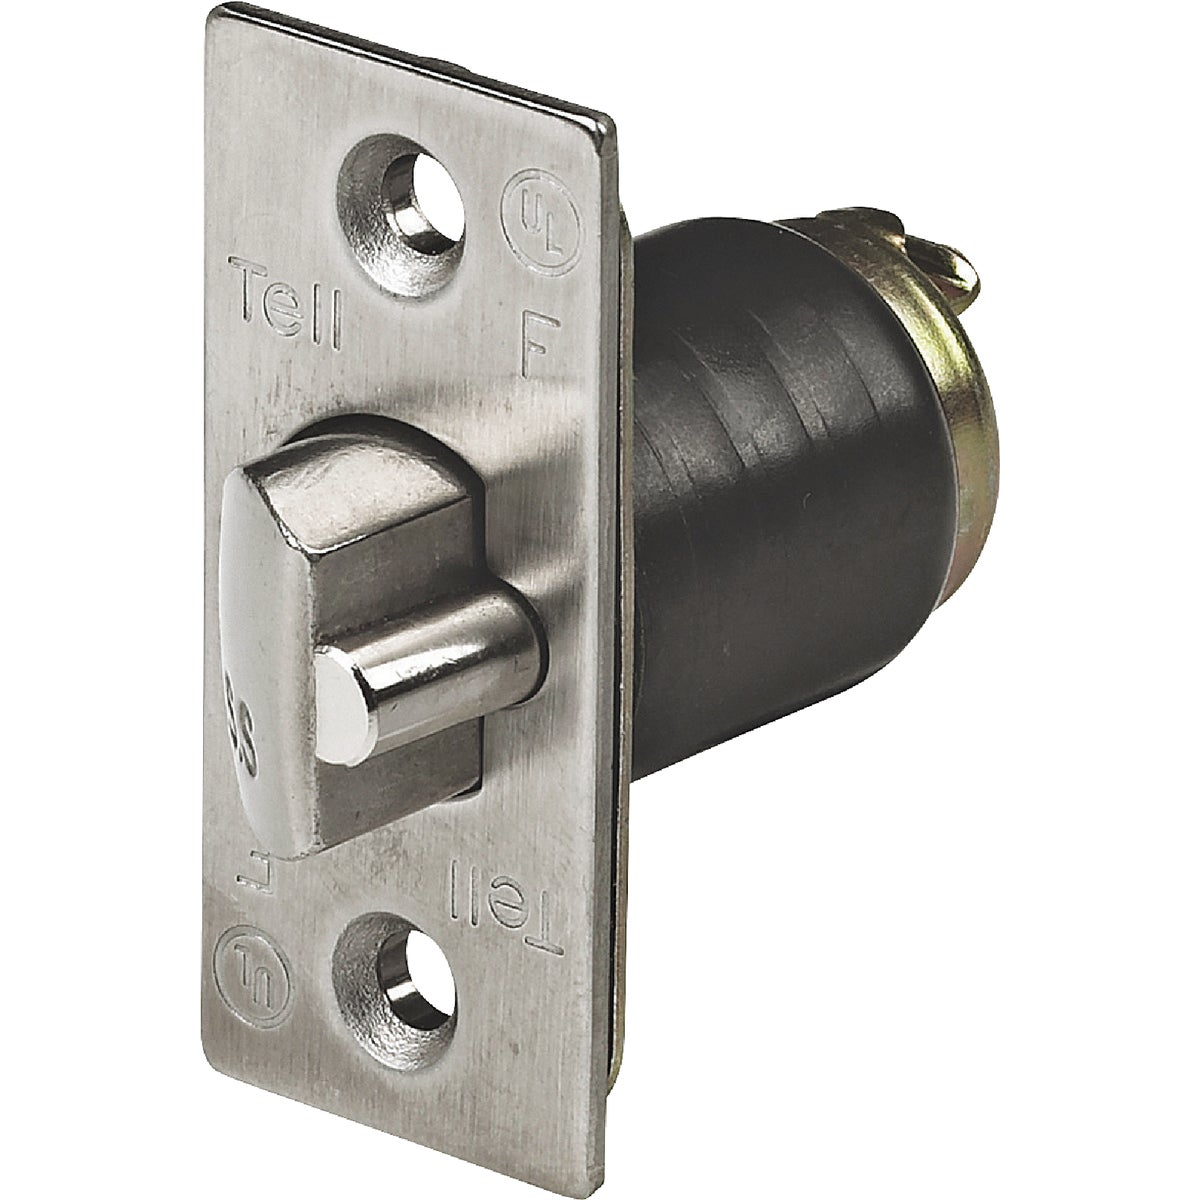 2-3/8 GUARDED LATCH - CL100184 by Tell Mfg Inc